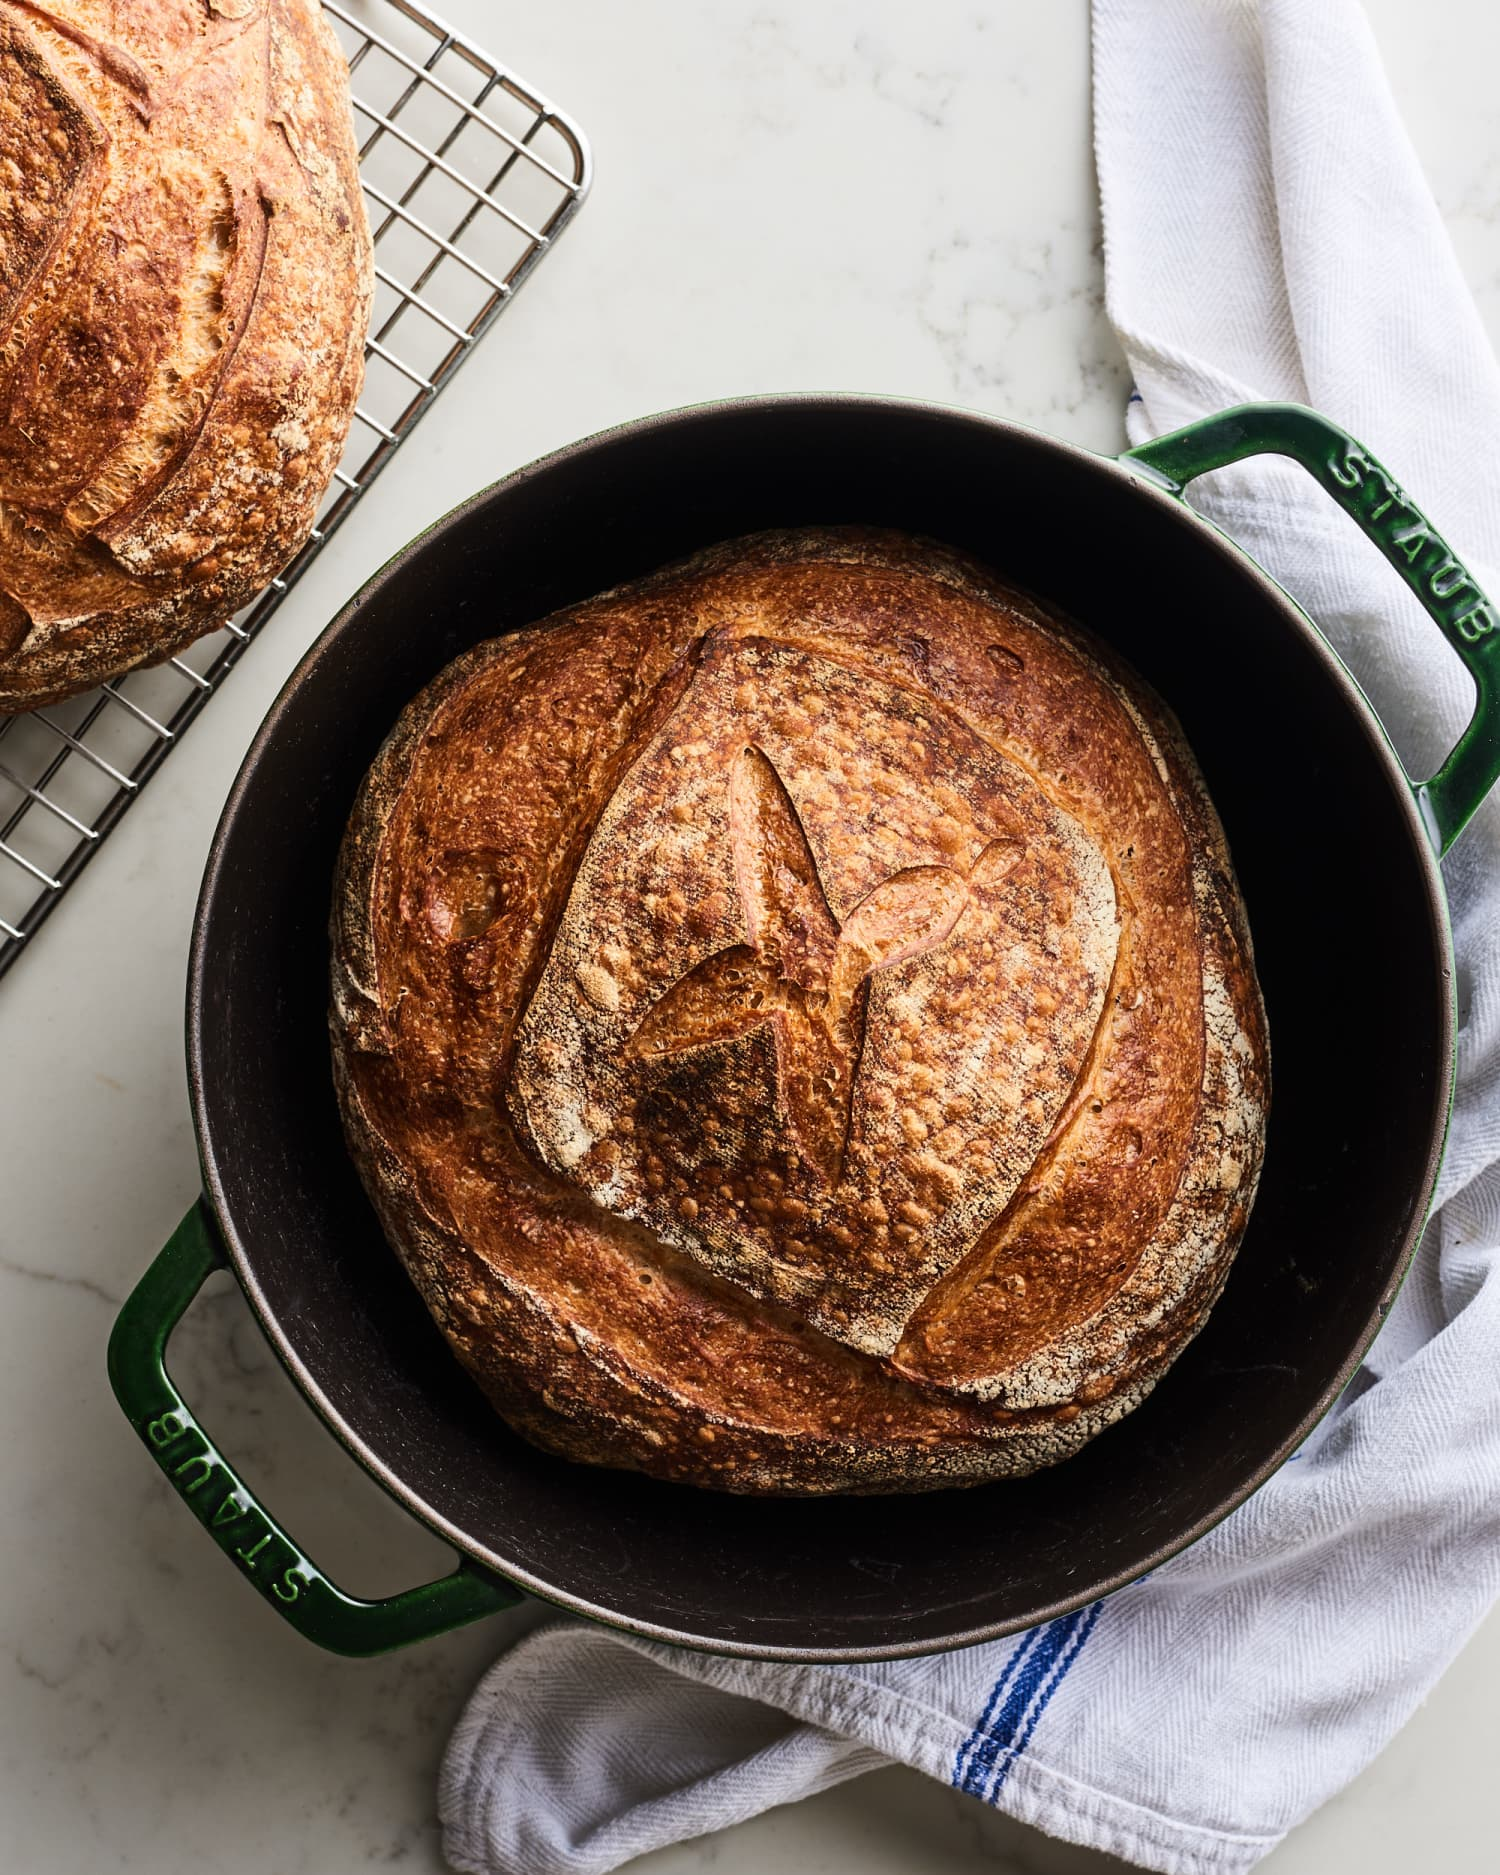 7 Sourdough Tools to Make You a Bread-Baking Pro